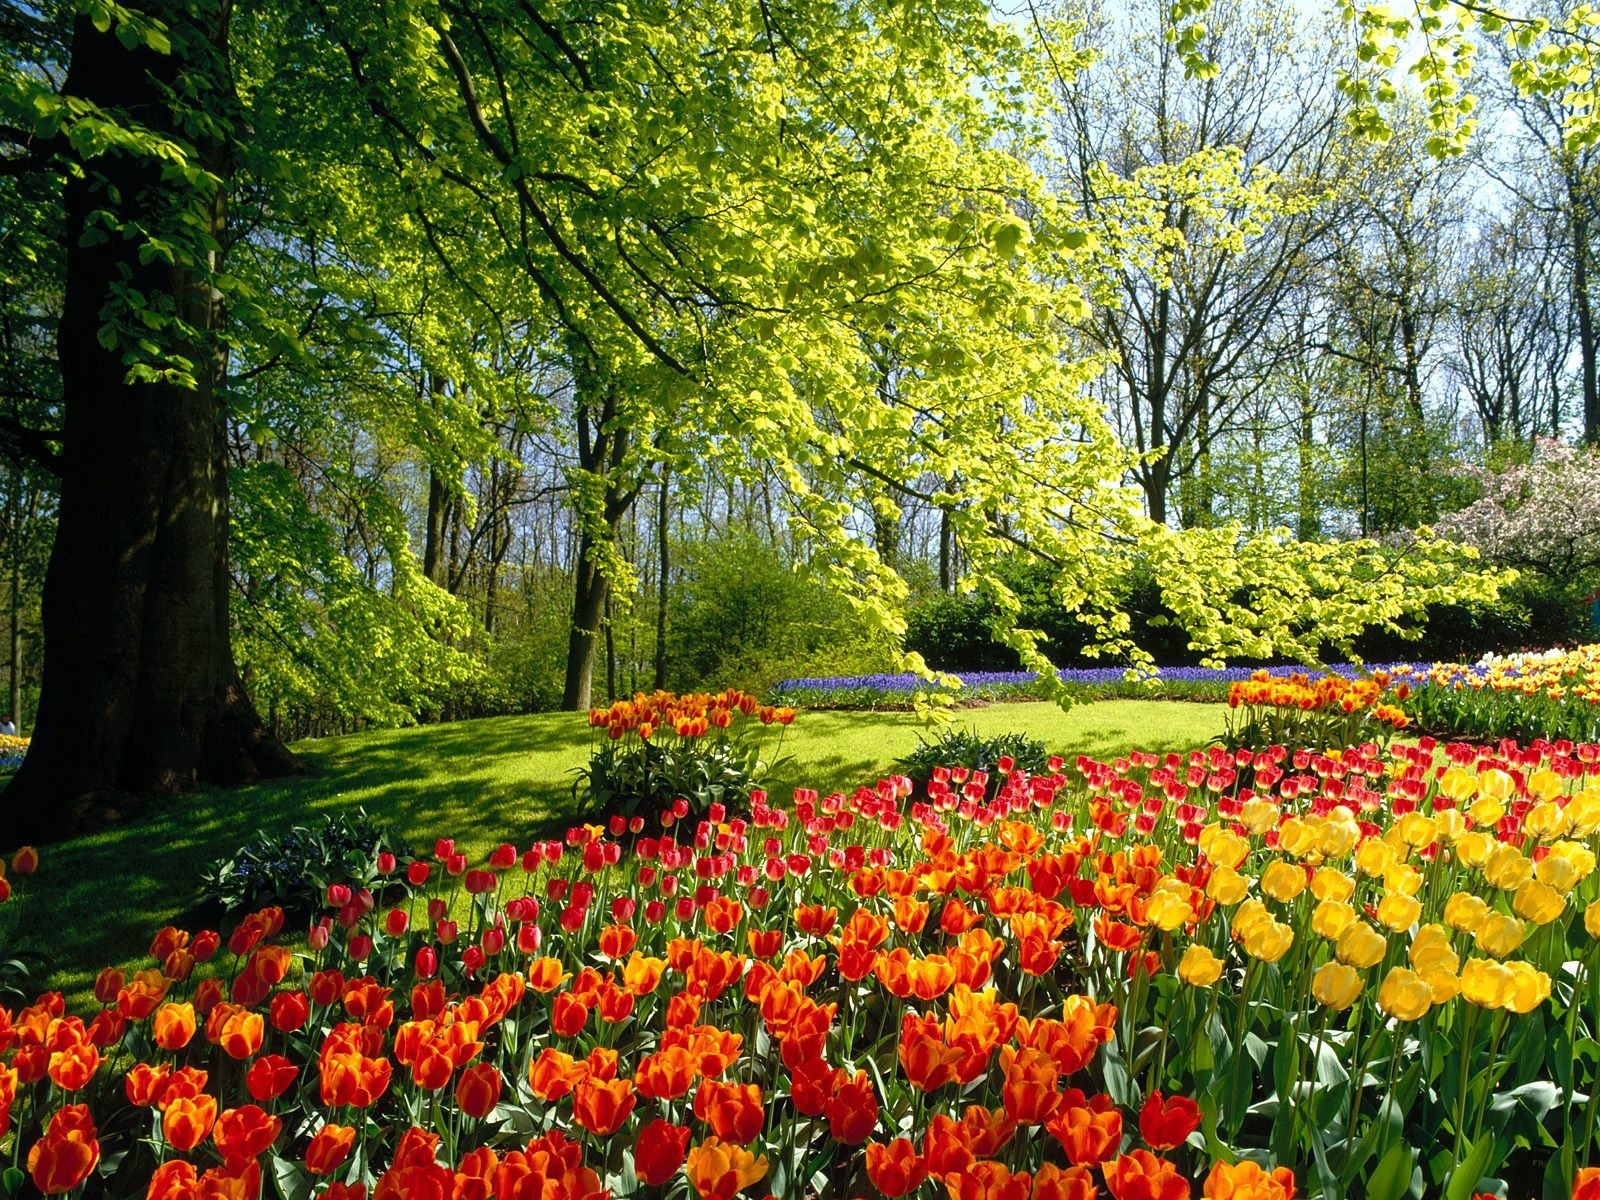 Spring flowers wallpaper nature wallpapers for free download about